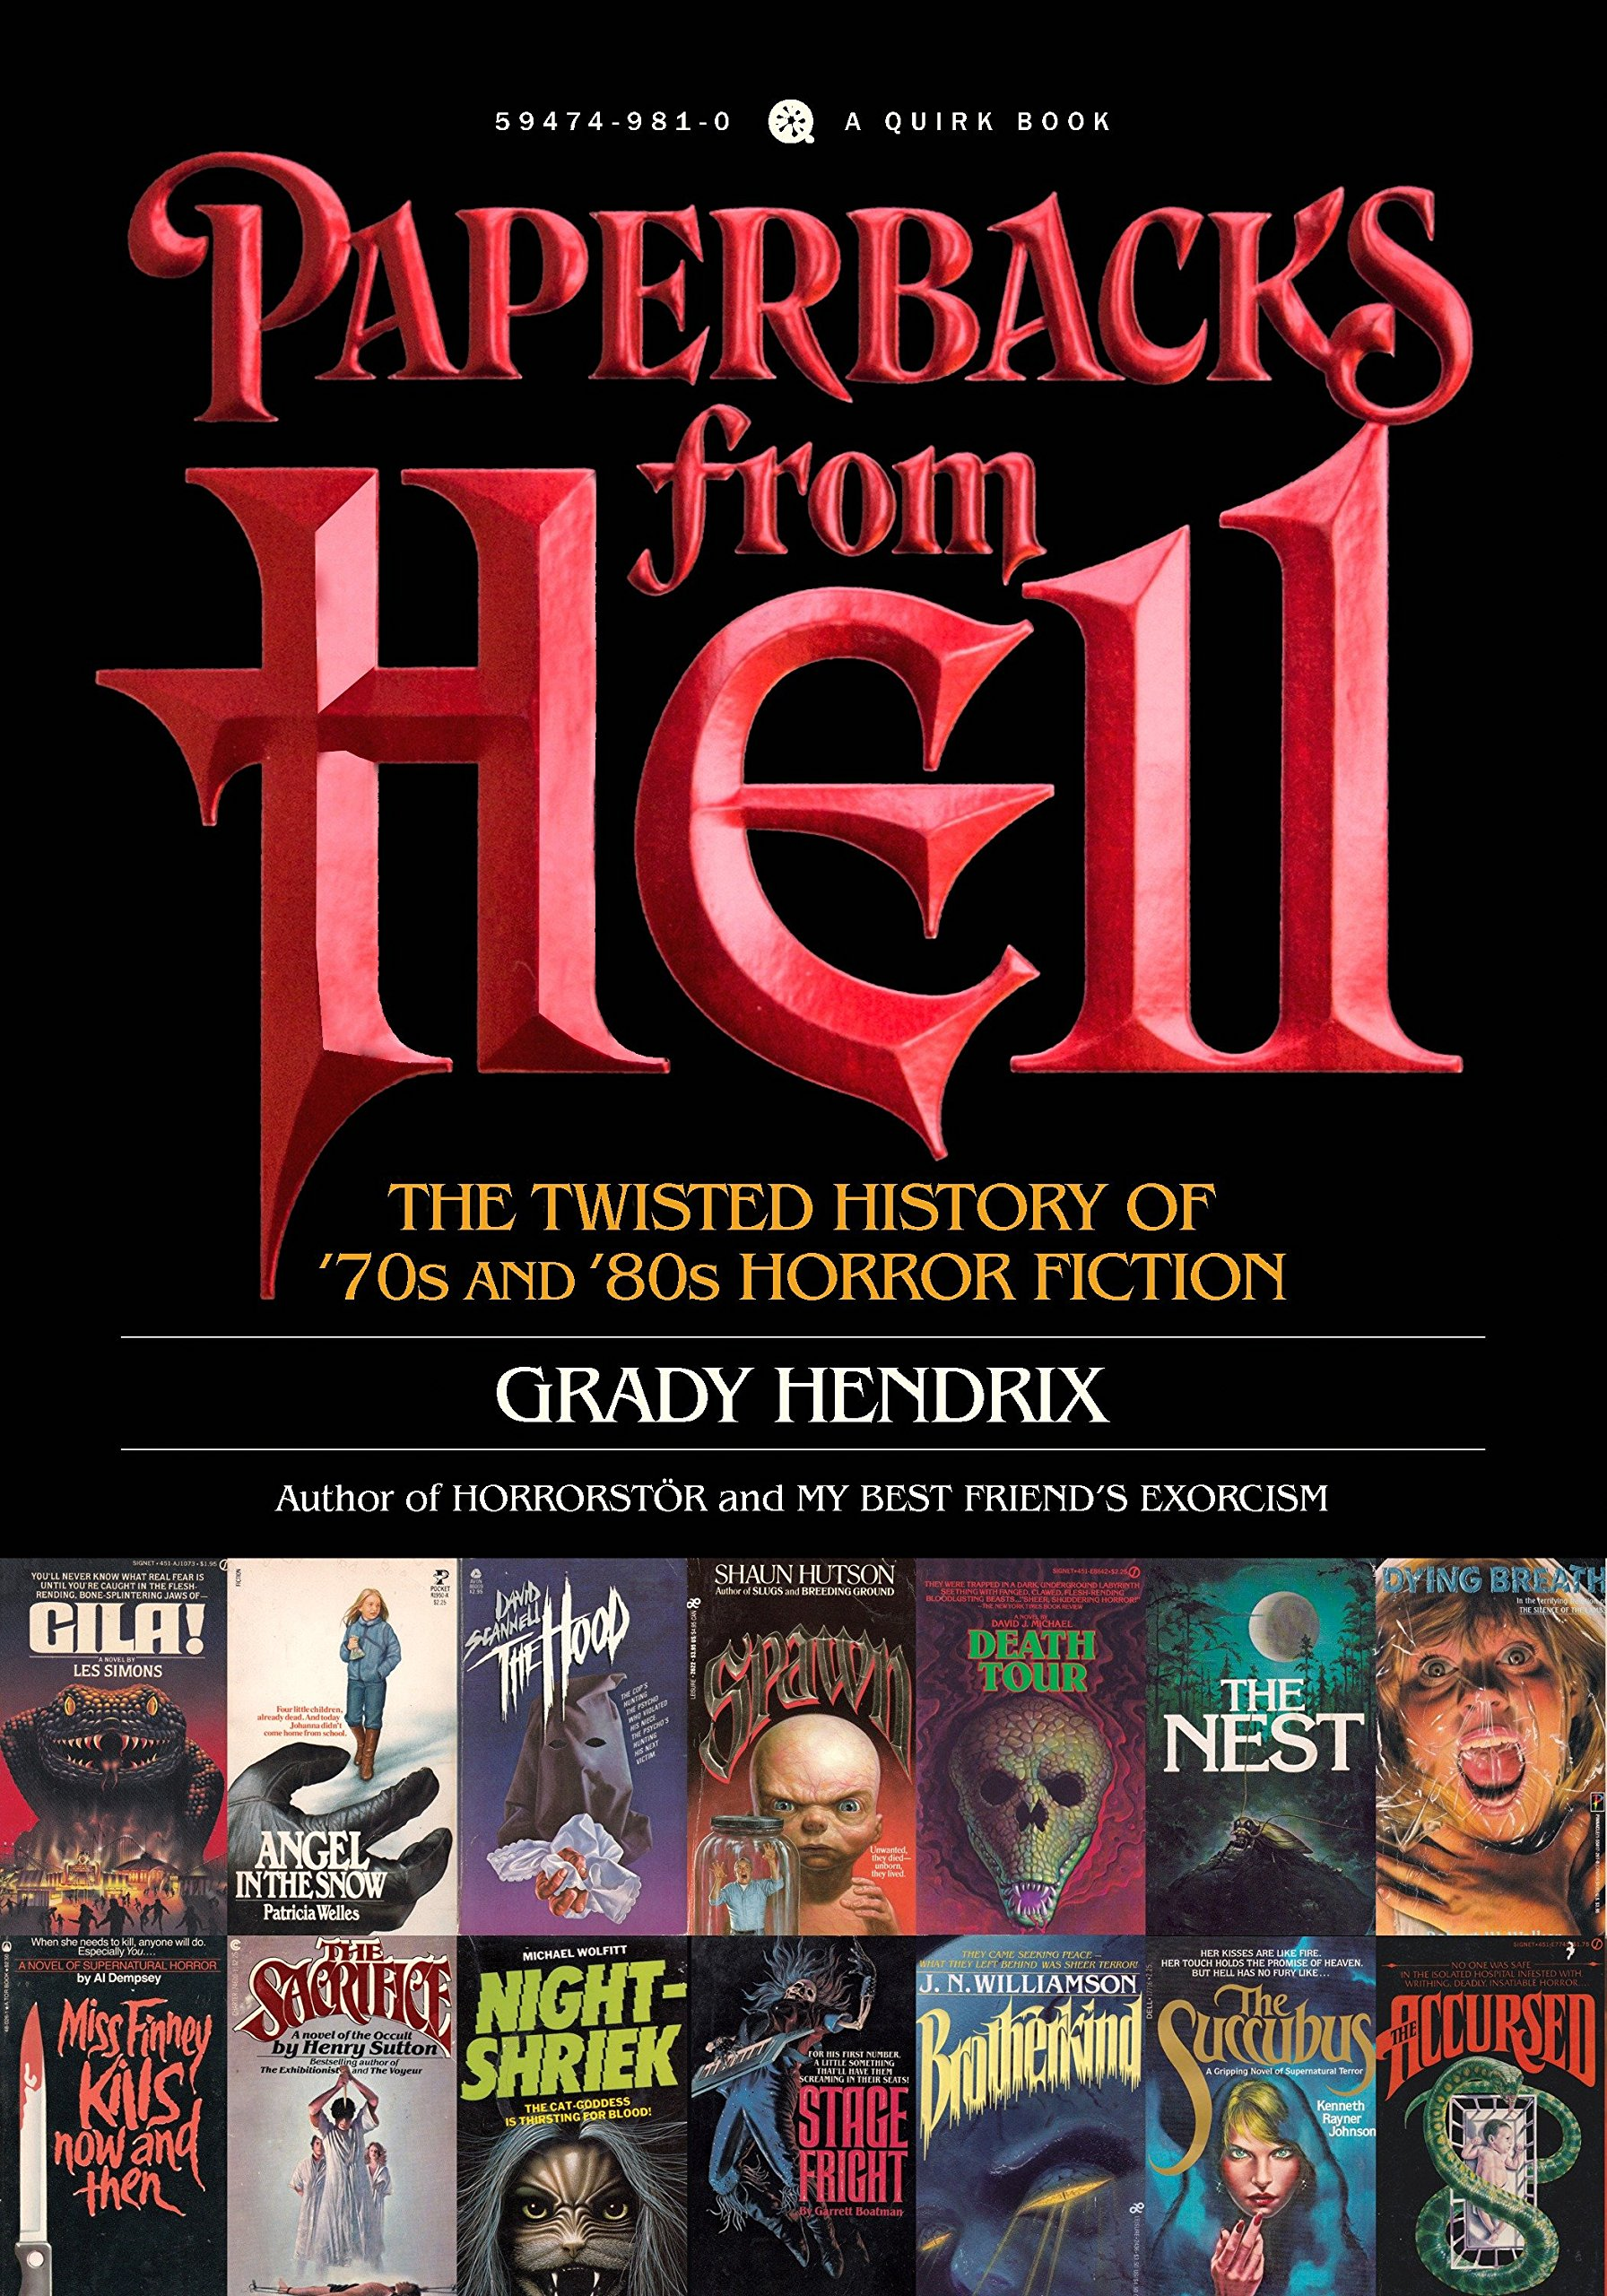 Amazon.com: Paperbacks from Hell: The Twisted History of '70s and '80s  Horror Fiction (9781594749810): Grady Hendrix: Books